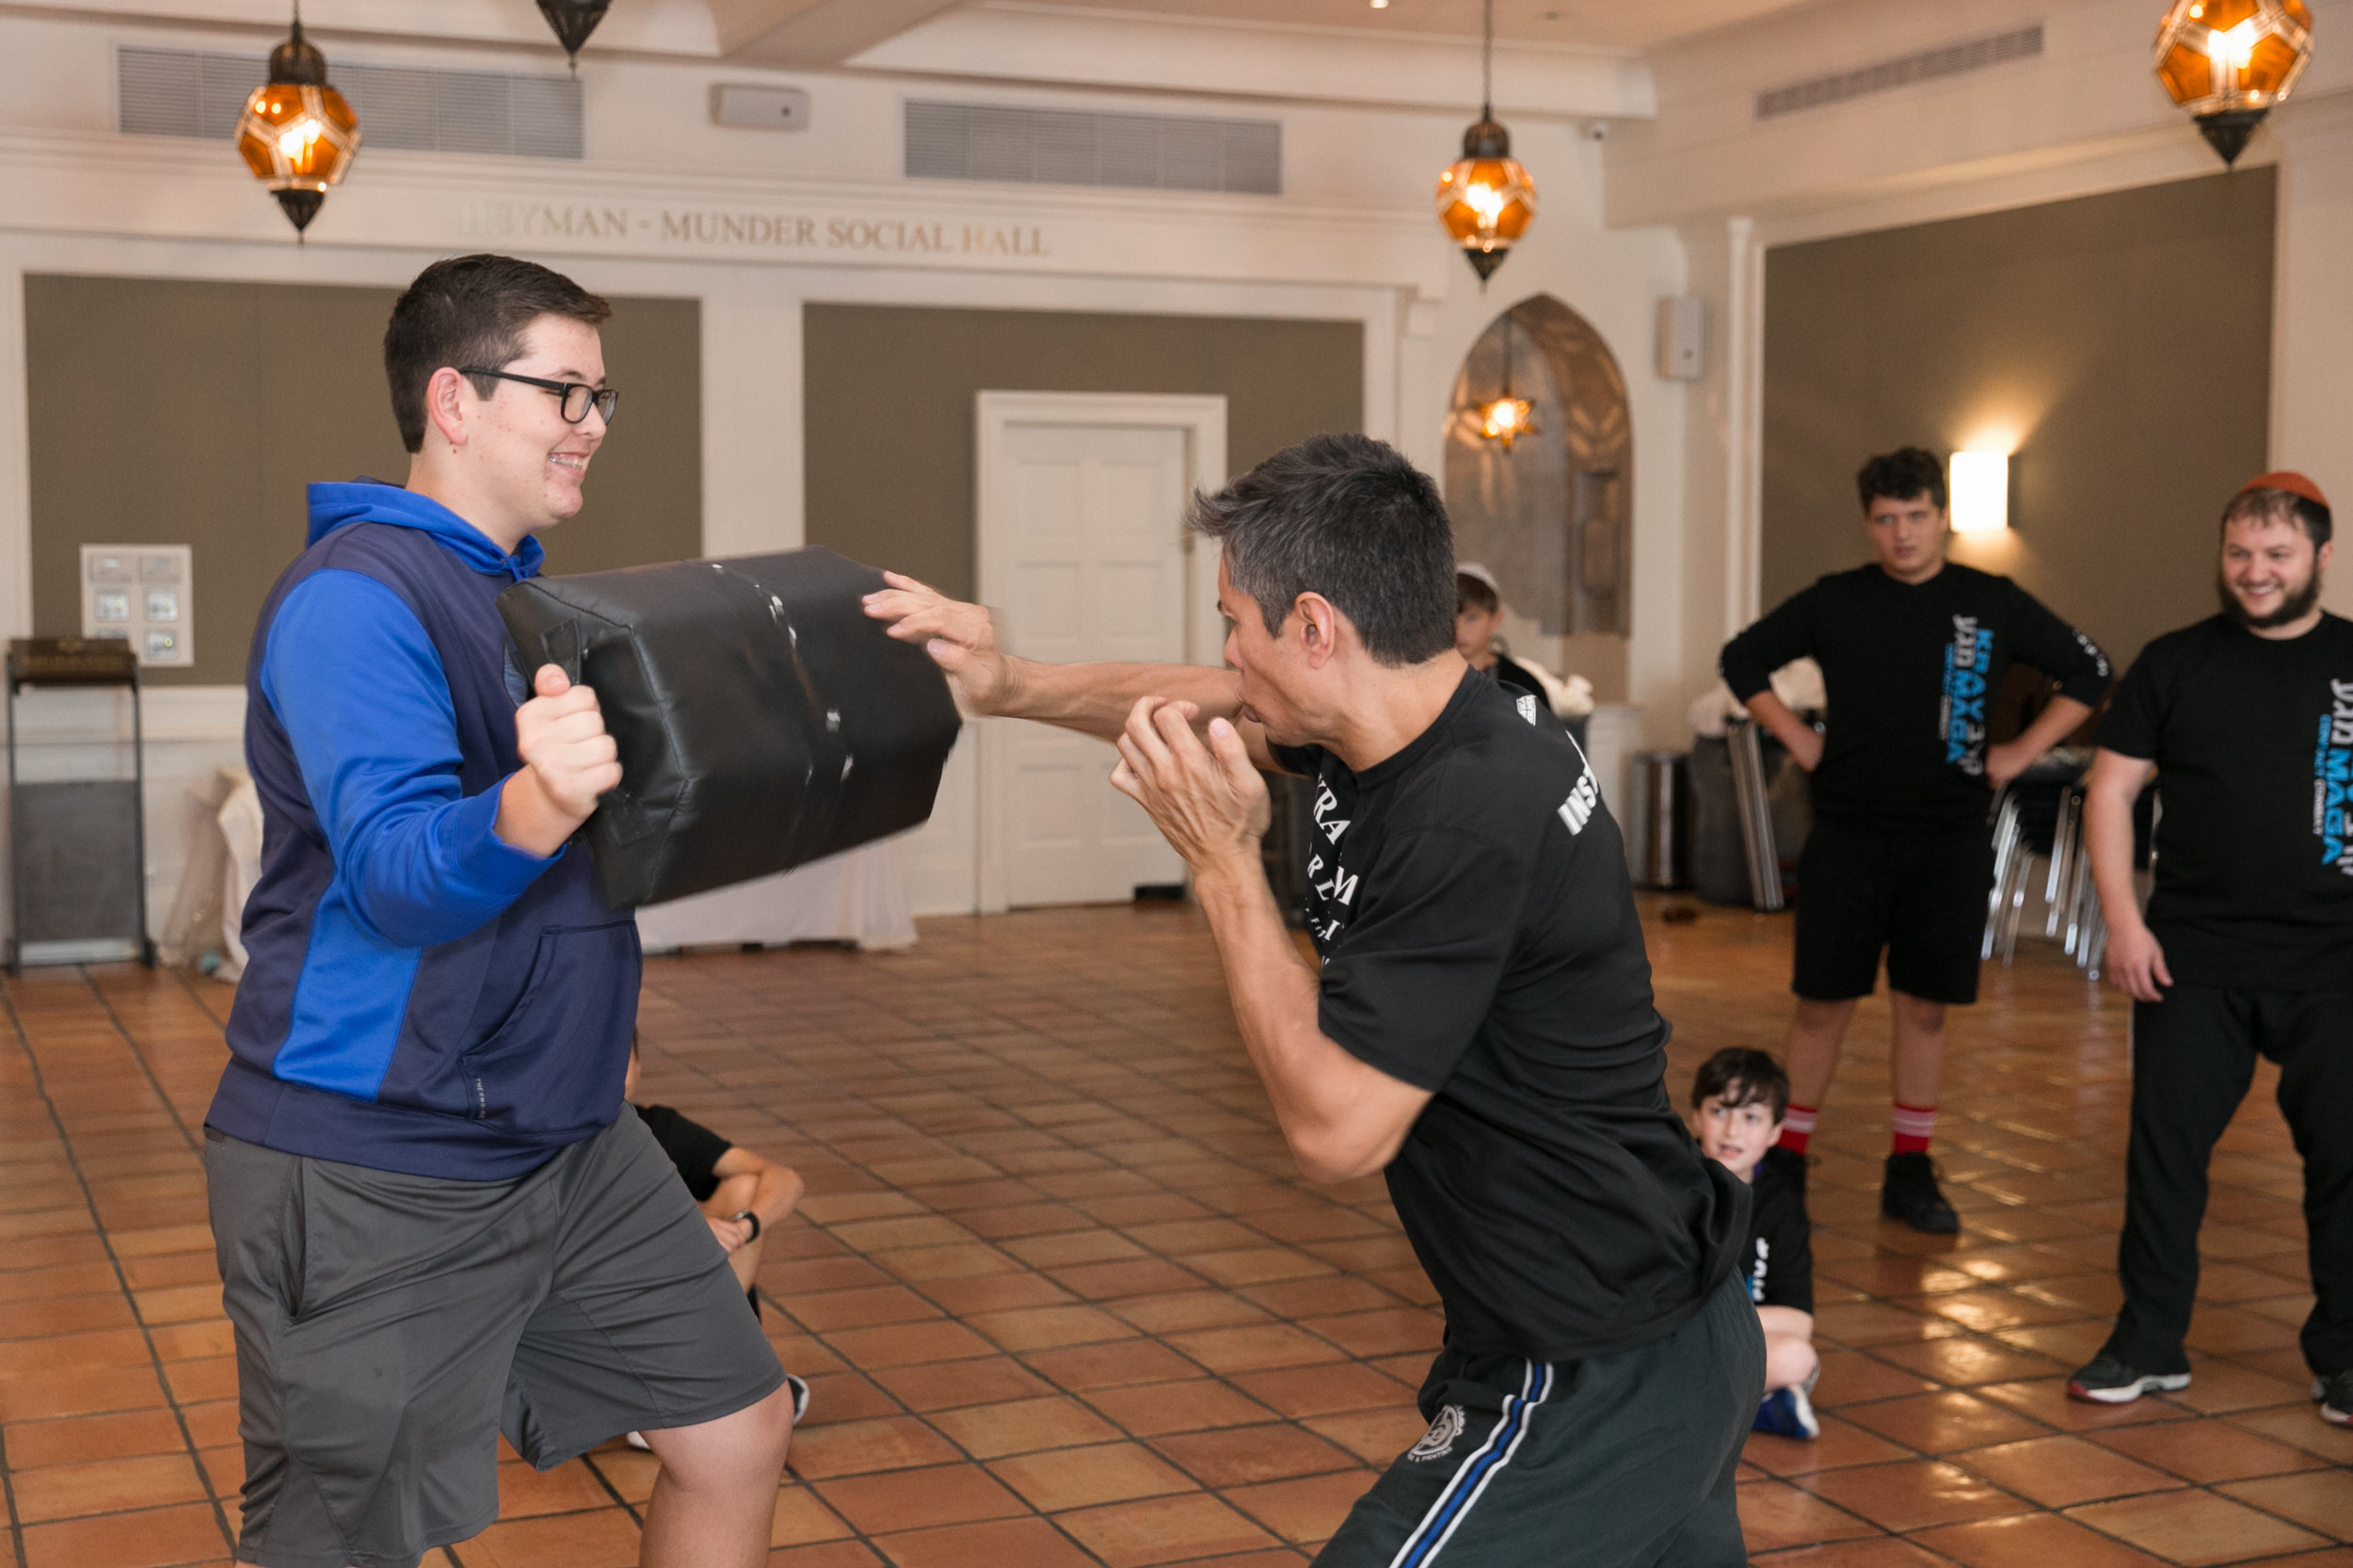 Krav Maga - MonthlyFirst developed by the Israeli army back in the 1940s, Krav Maga is a form of self-defense that is widely practiced today all over the world. Join other Jewish teens for this incredible opportunity! The physical training is great exercise and stress reliever.